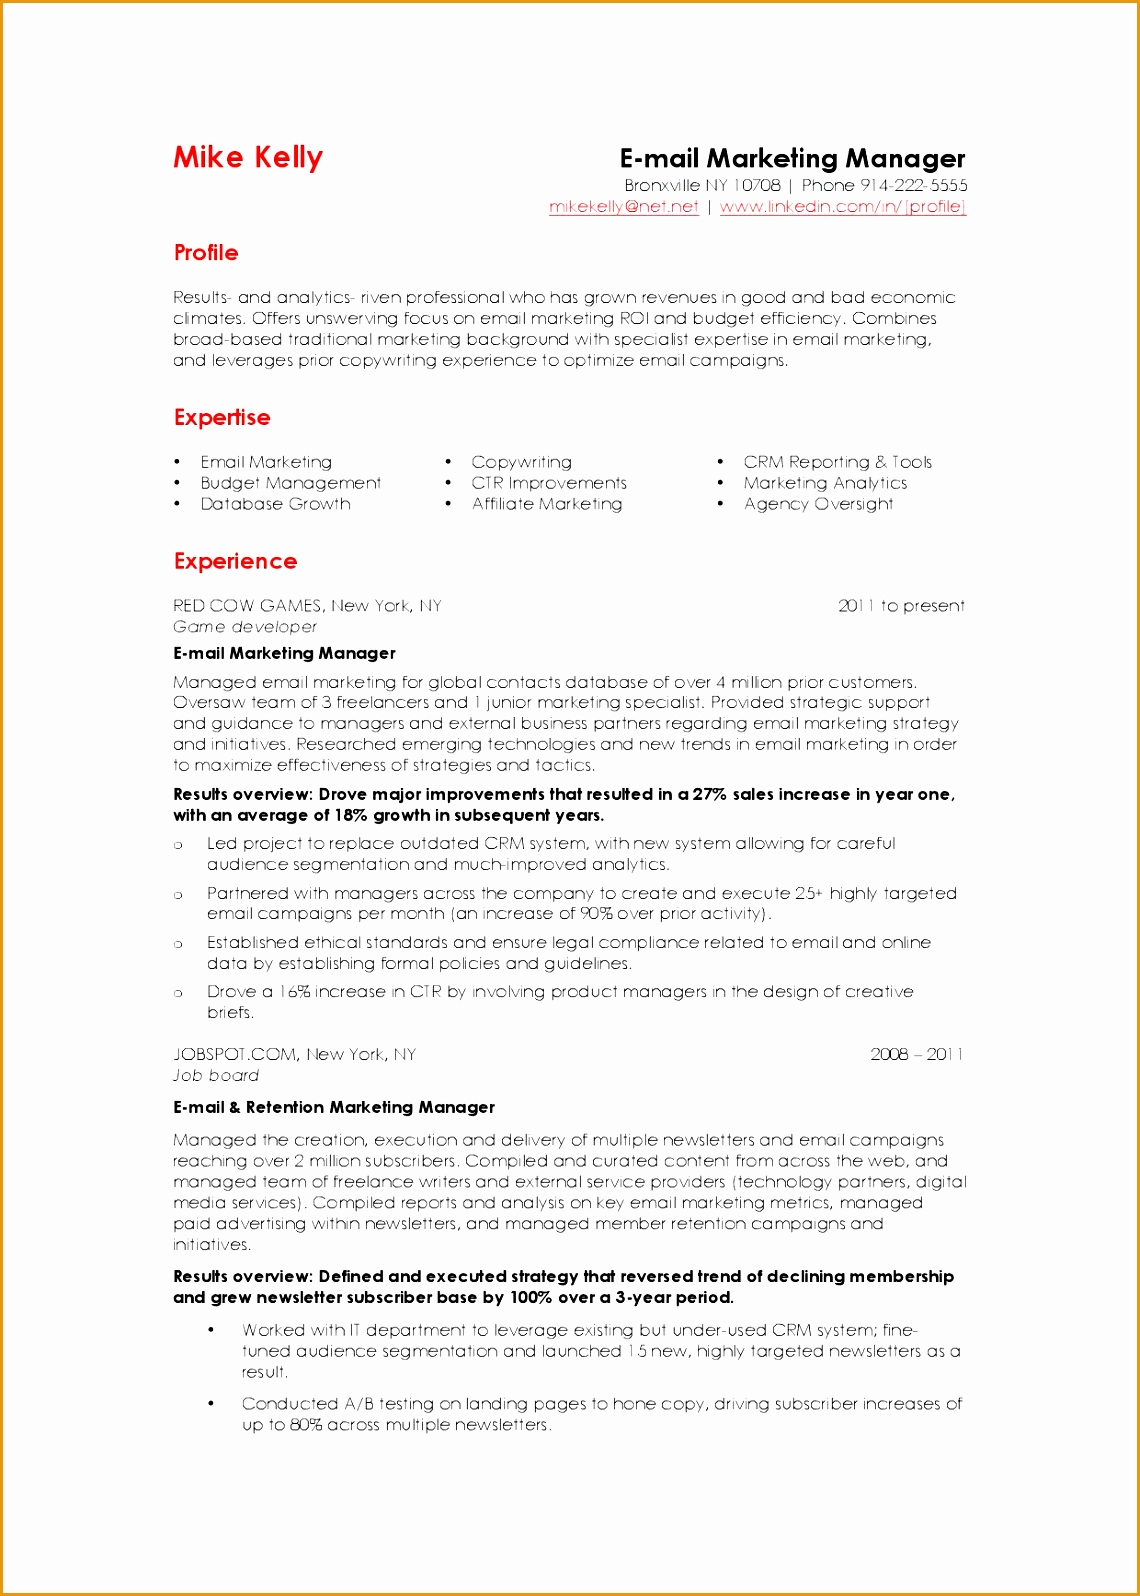 Email Marketing Manager resume example15961140